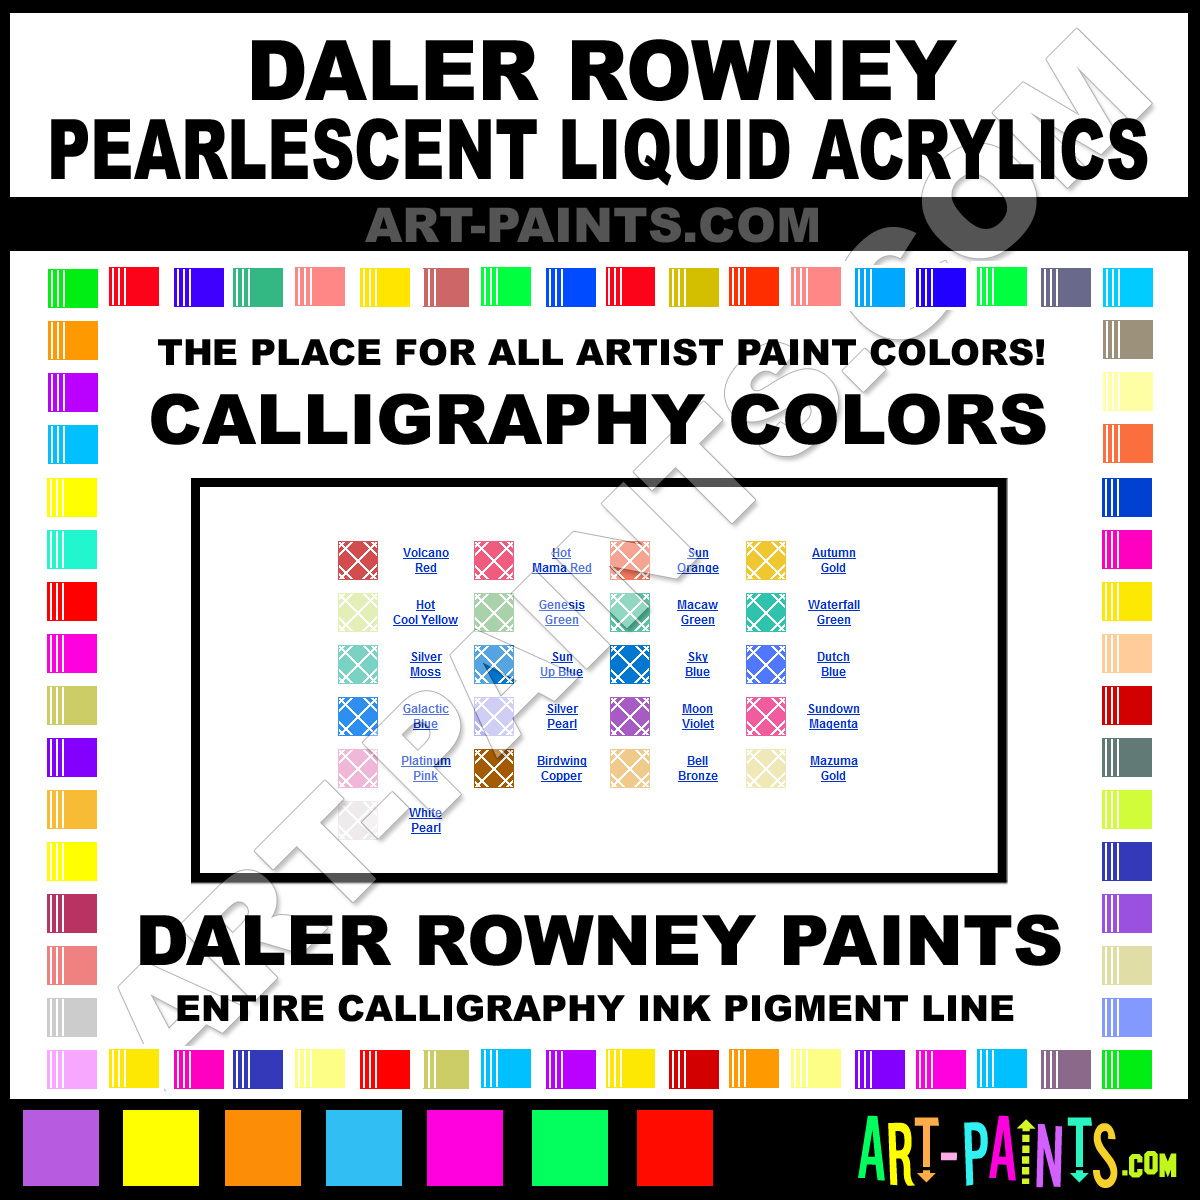 Daler Rowney Pearlescent Liquid Acrylic Calligraphy Ink